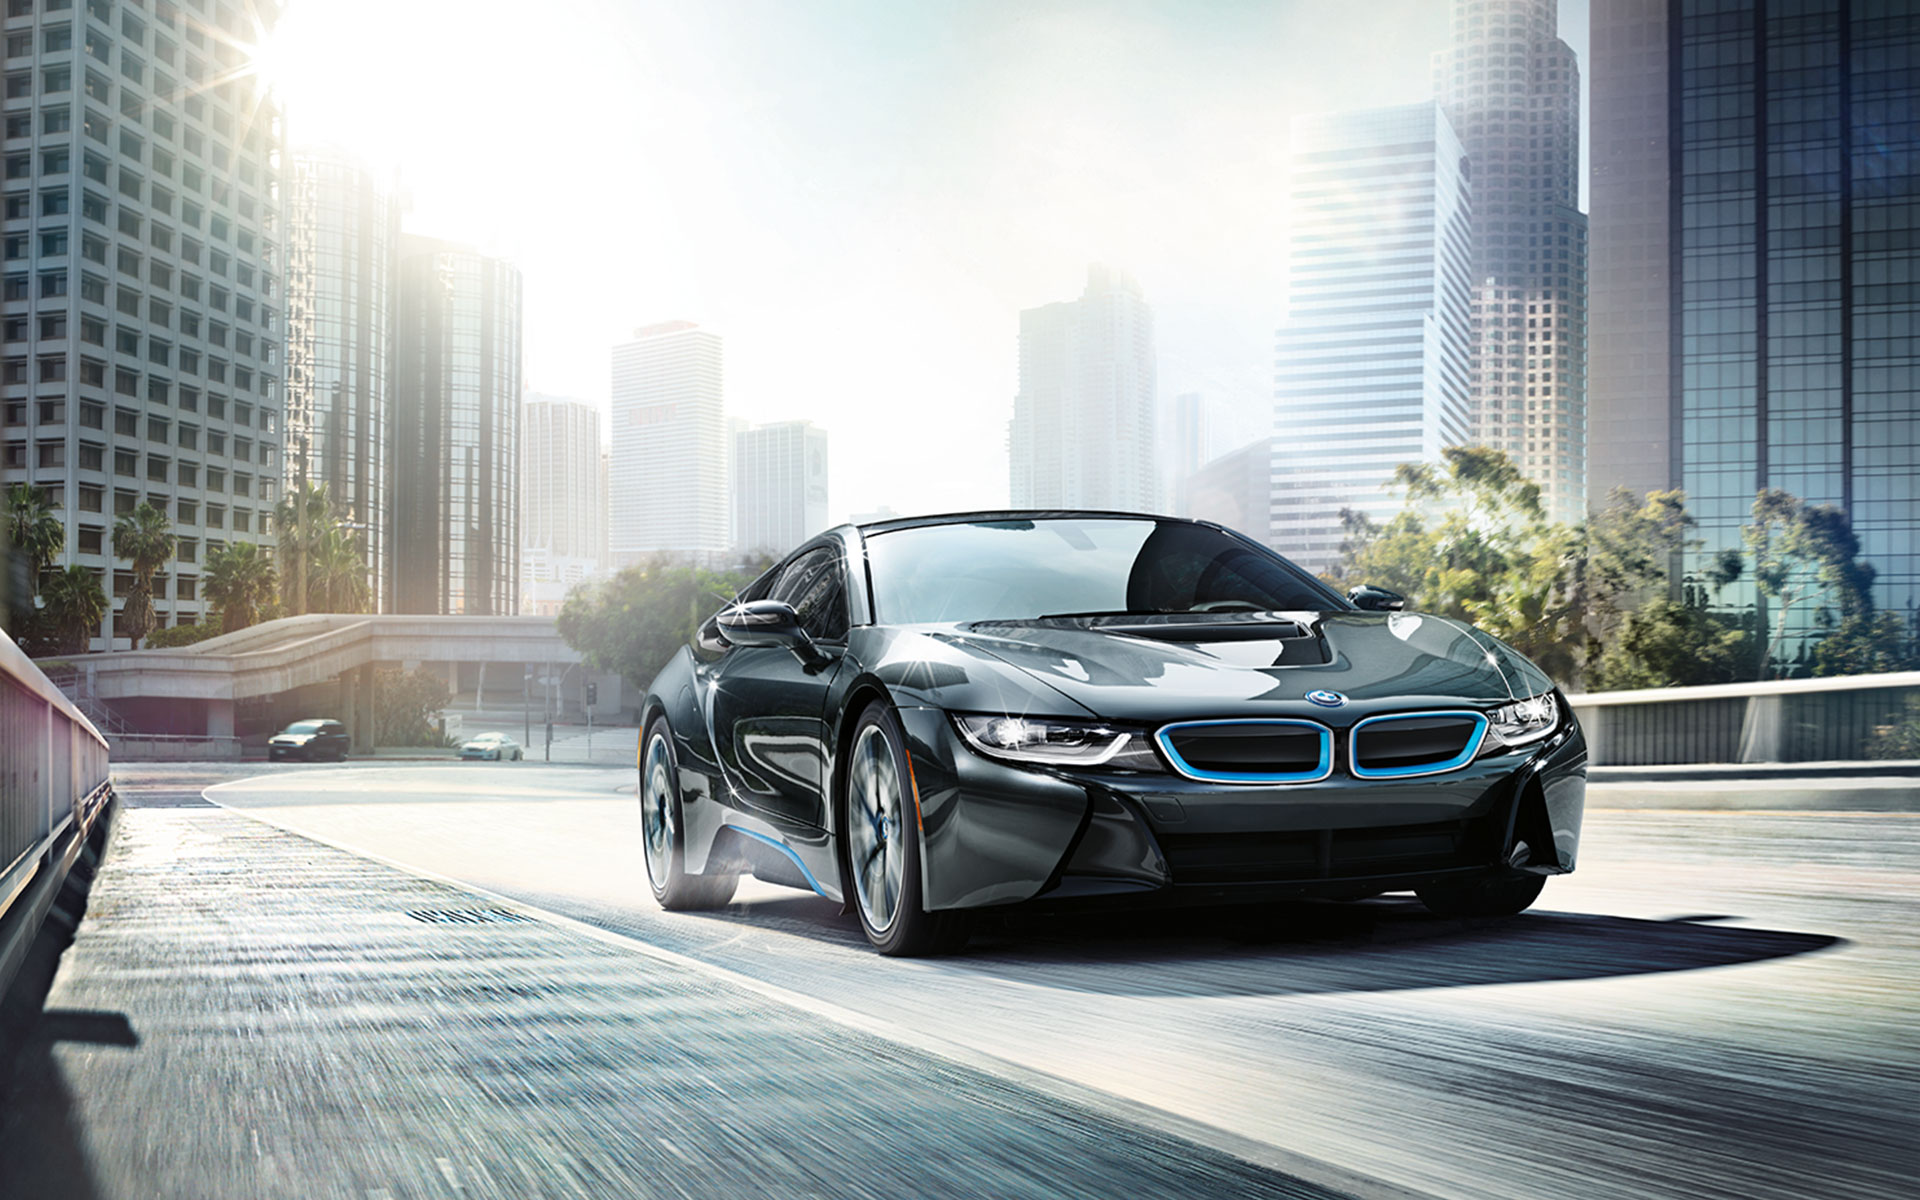 Ford Truck Hd Wallpaper 2016 Bmw I8 News And Information Conceptcarz Com